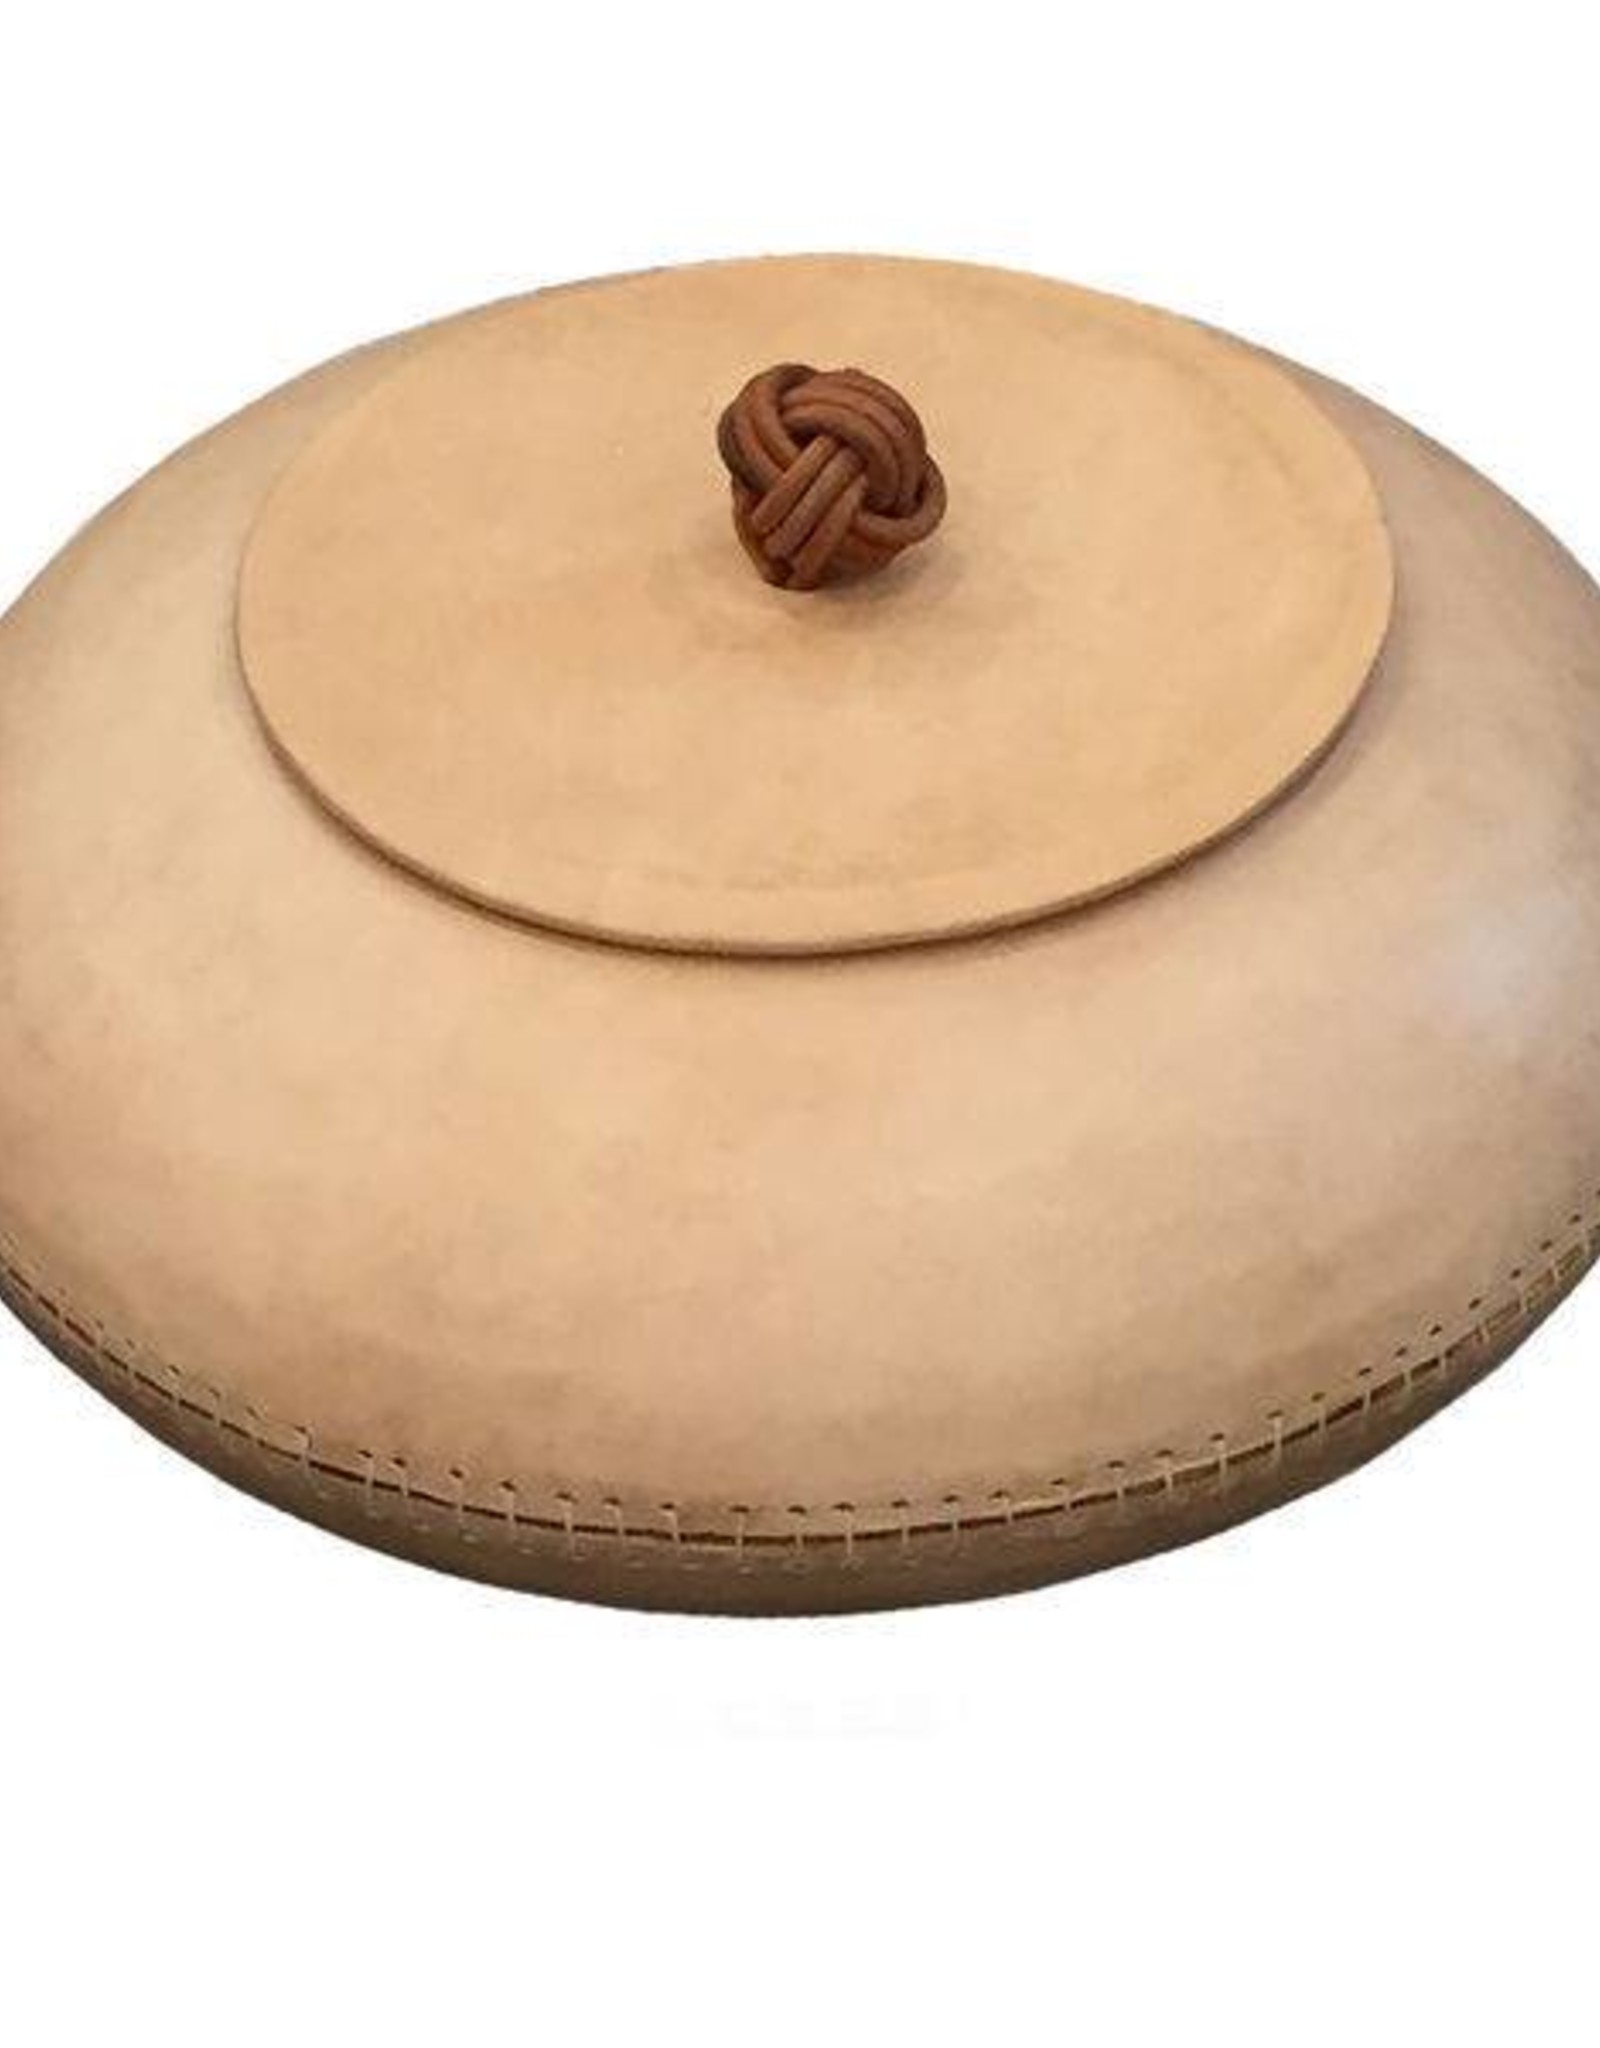 MooMoo Designs Knot Lid Bowl - Natural Leather